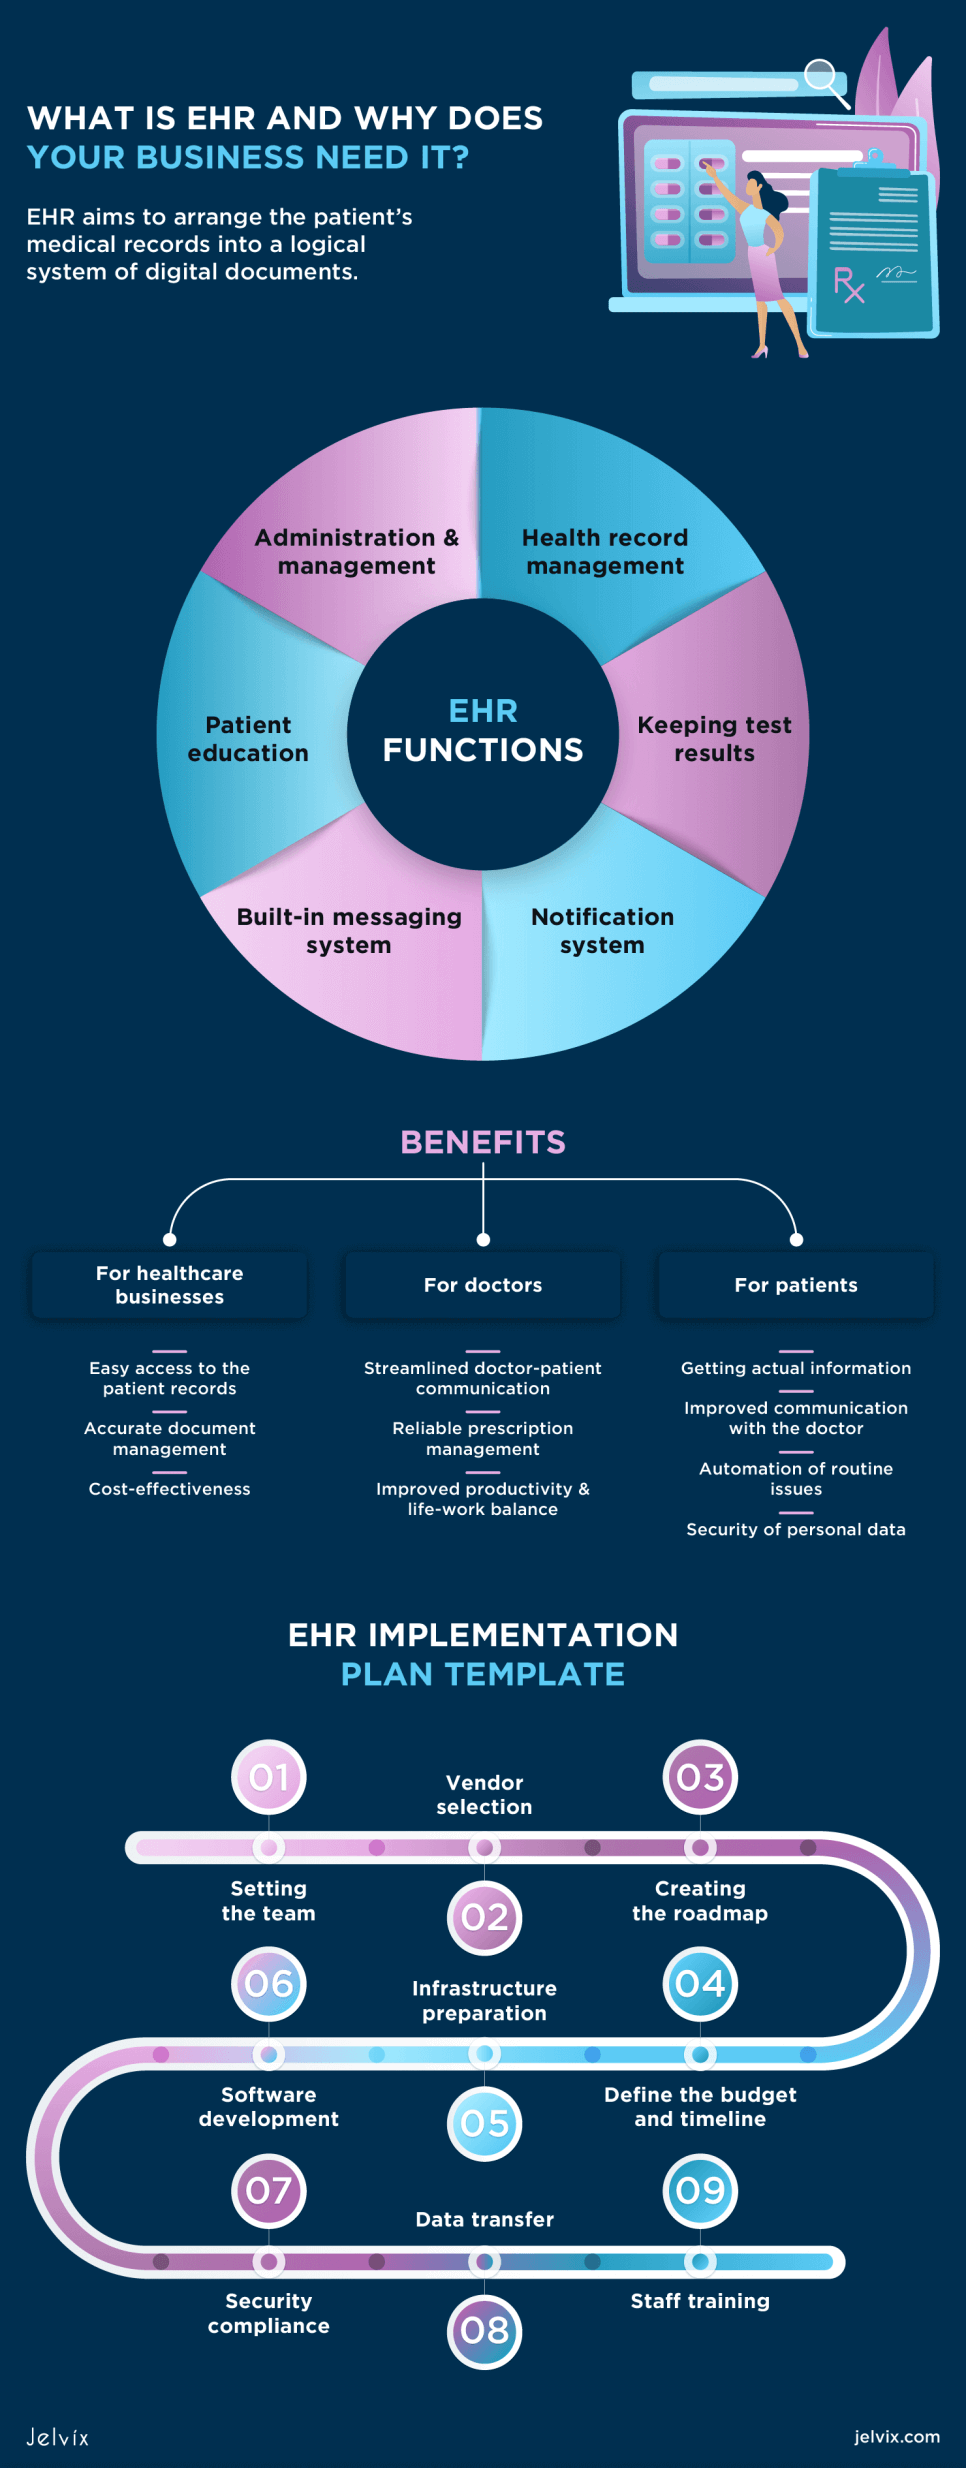 Stages of EHR implementation